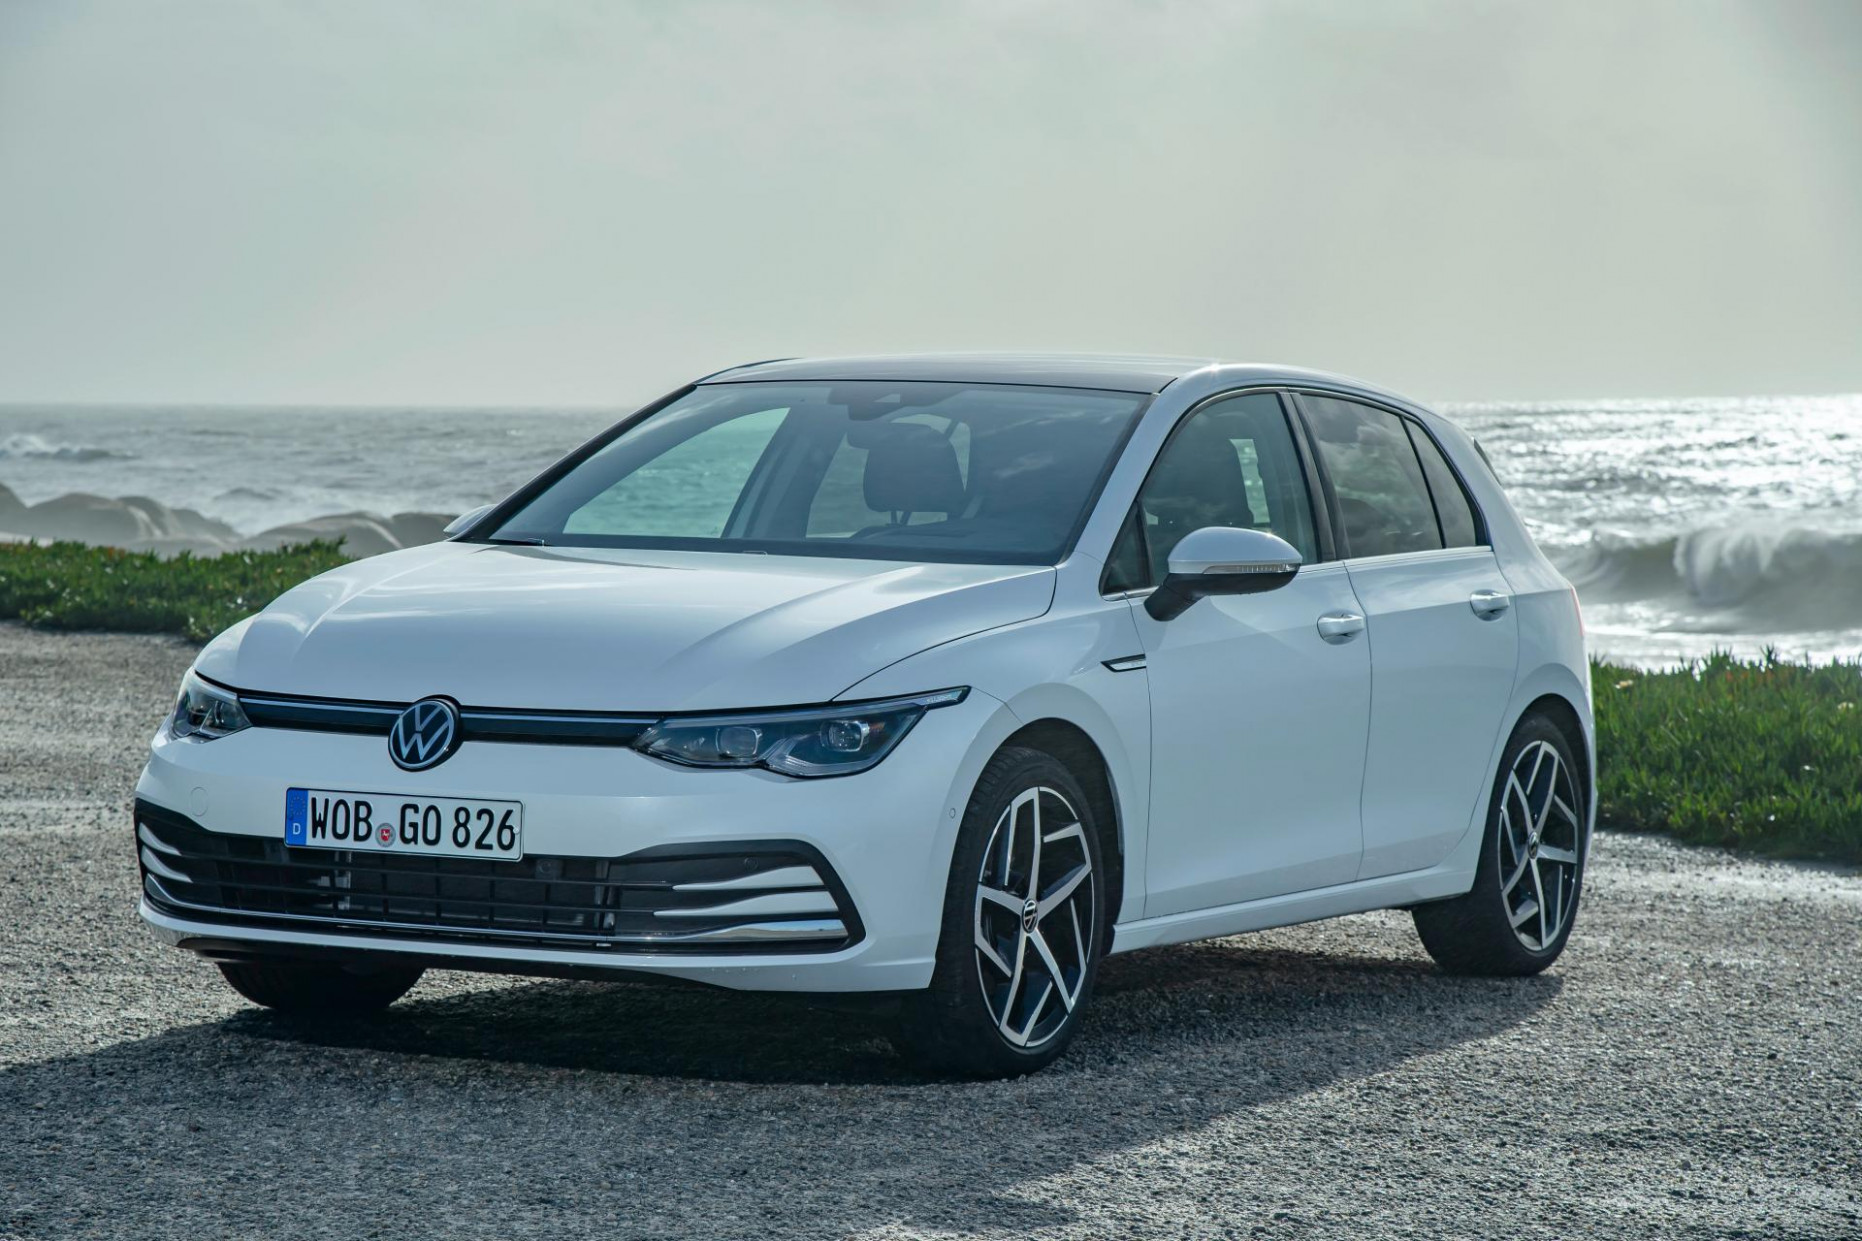 VW To Launch 6 New Models In 6, Including 6 SUVs And 6 EVs ...